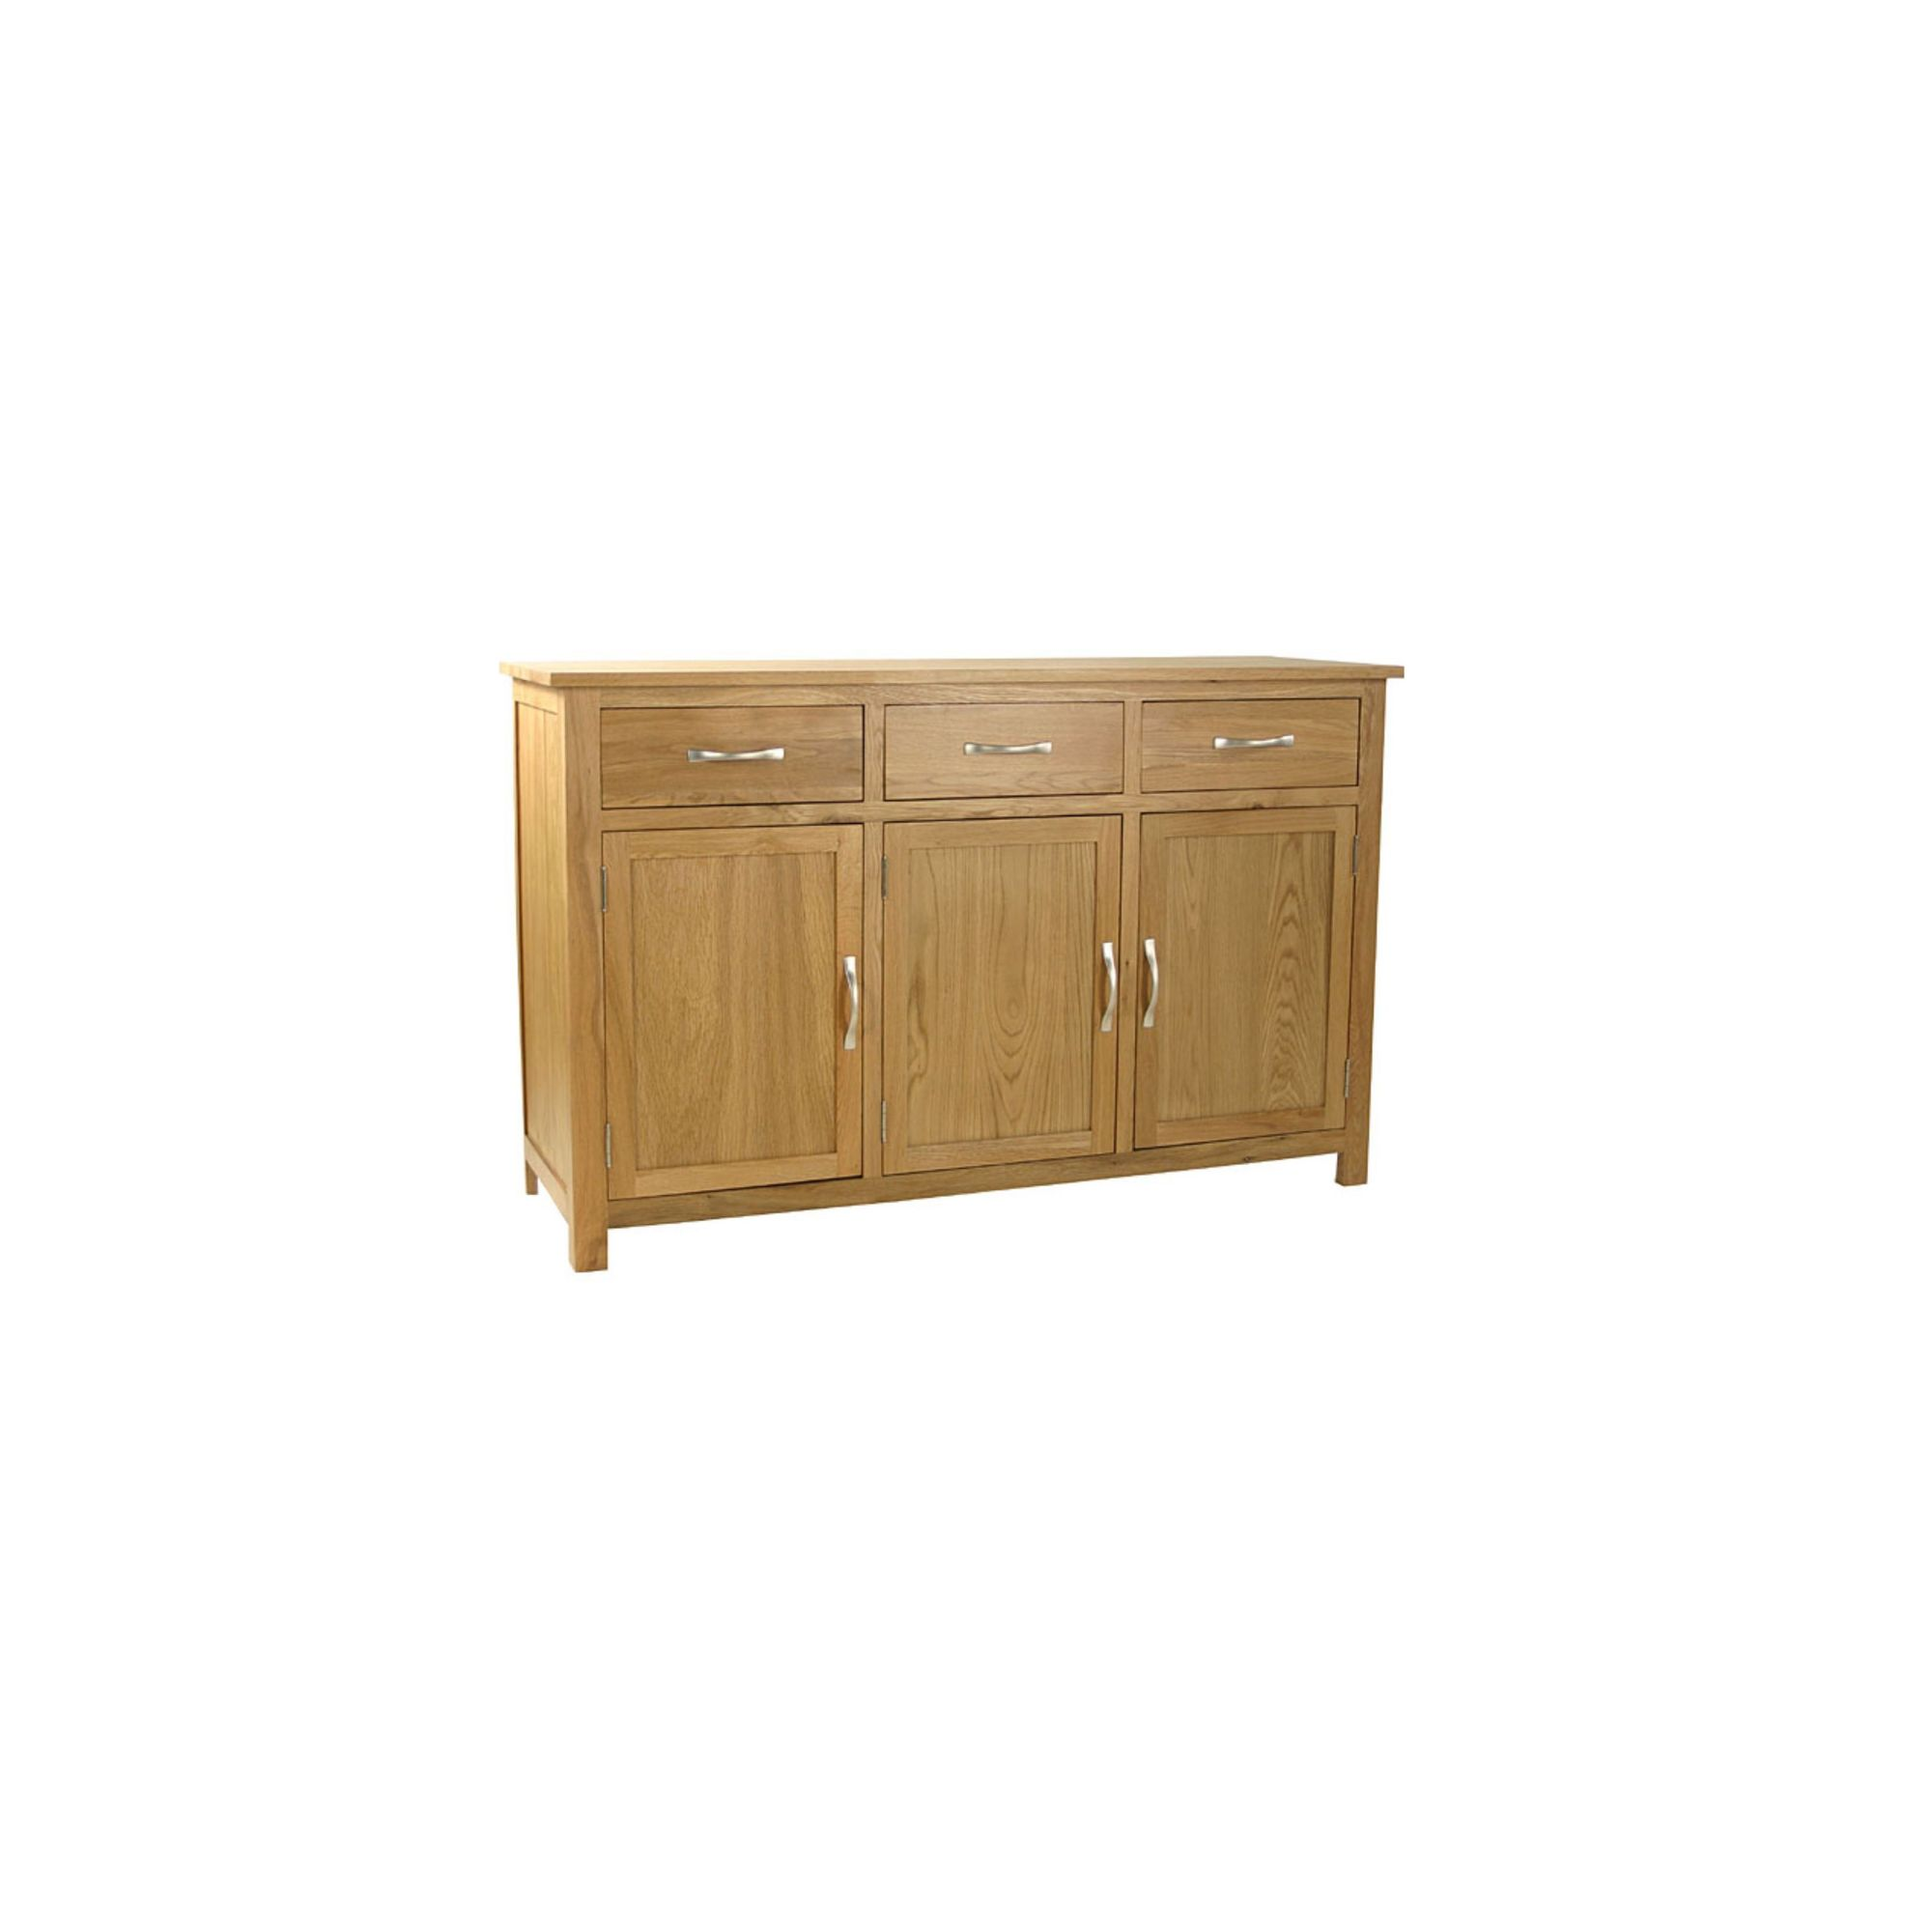 Kelburn Furniture Essentials 3 Drawer Sideboard in Light Oak Stain and Satin Lacquer at Tesco Direct